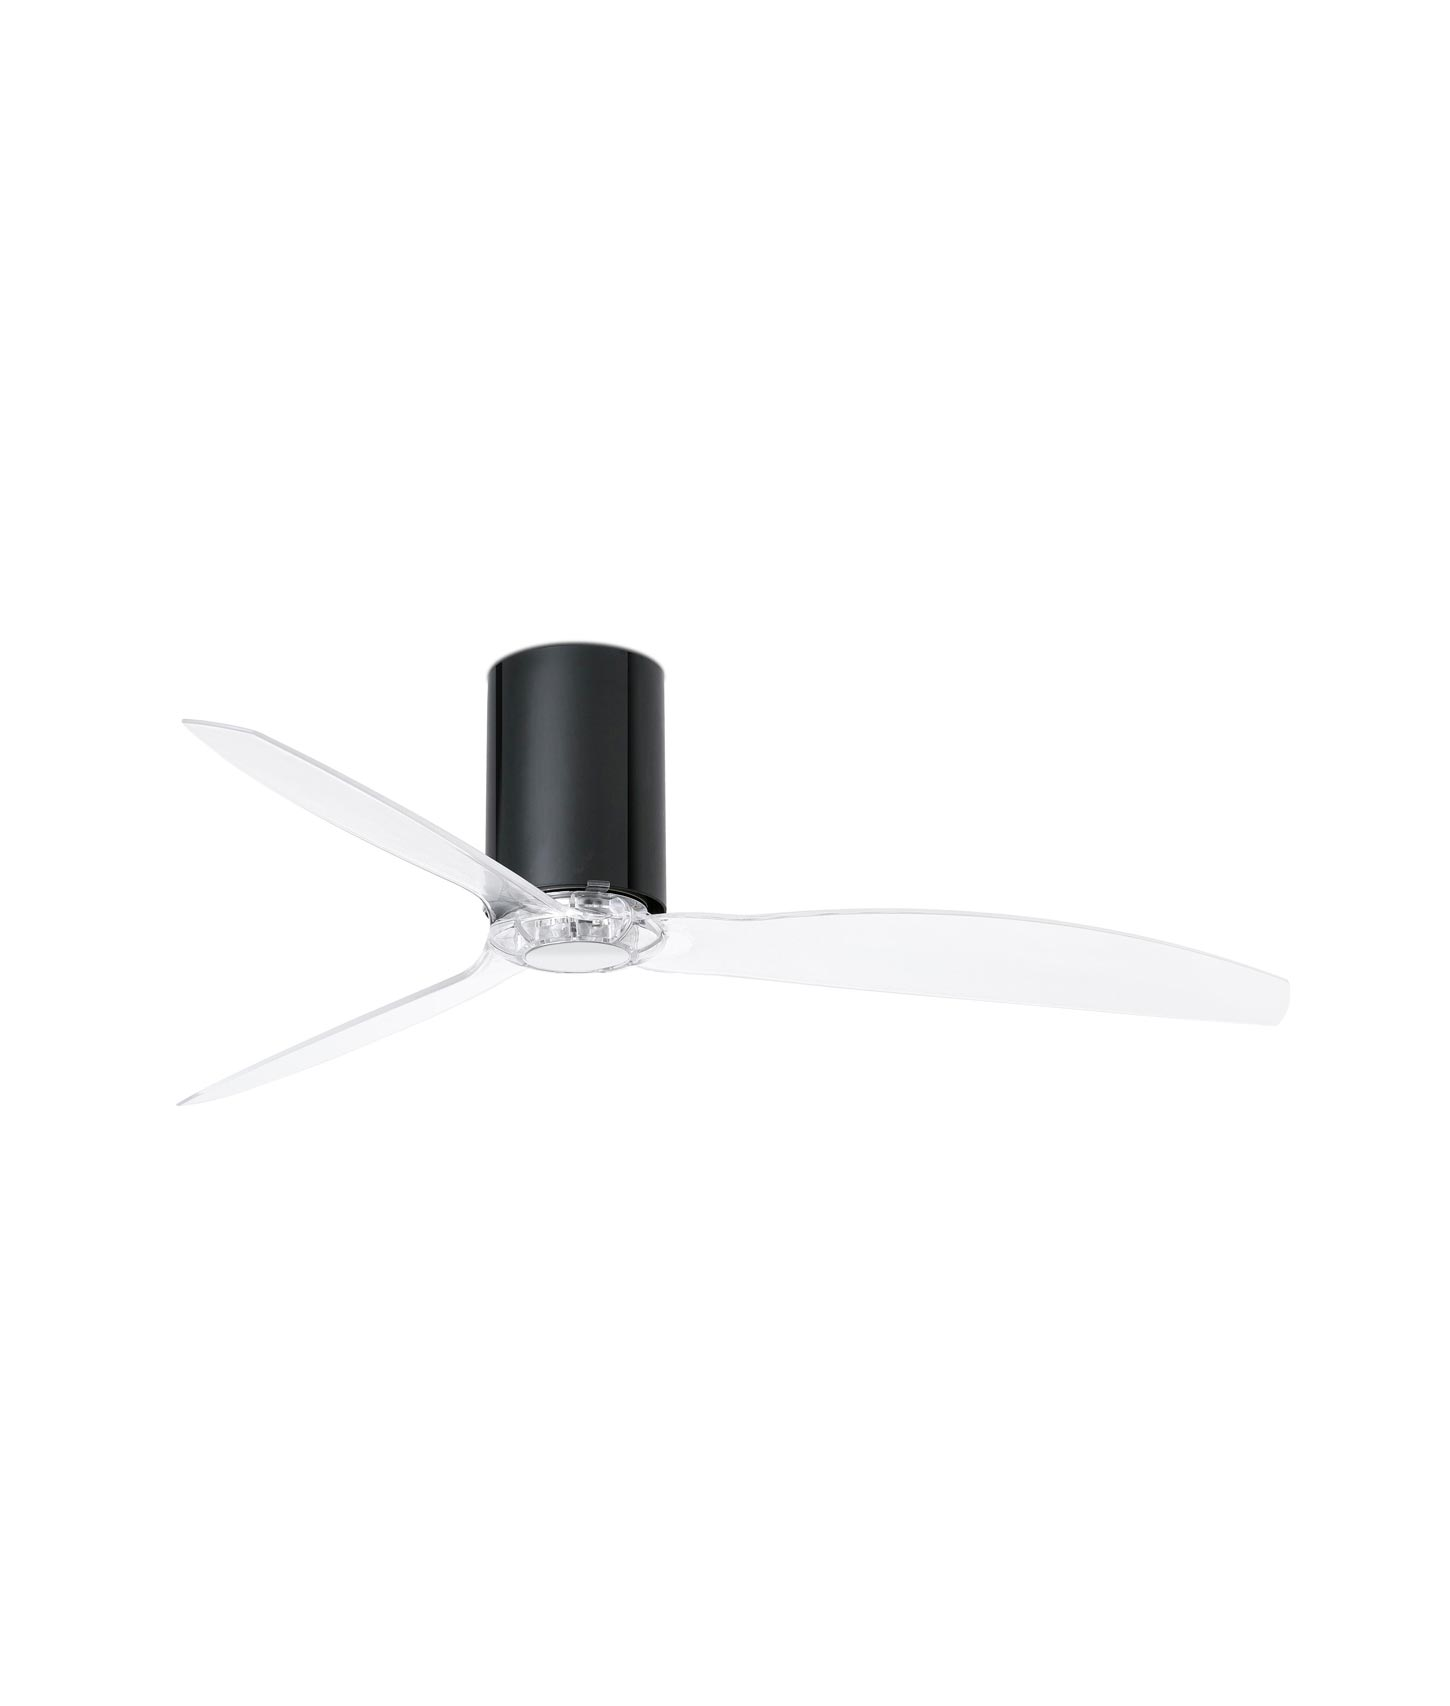 Ventilador negro brillo y transparente MINI TUBE FAN